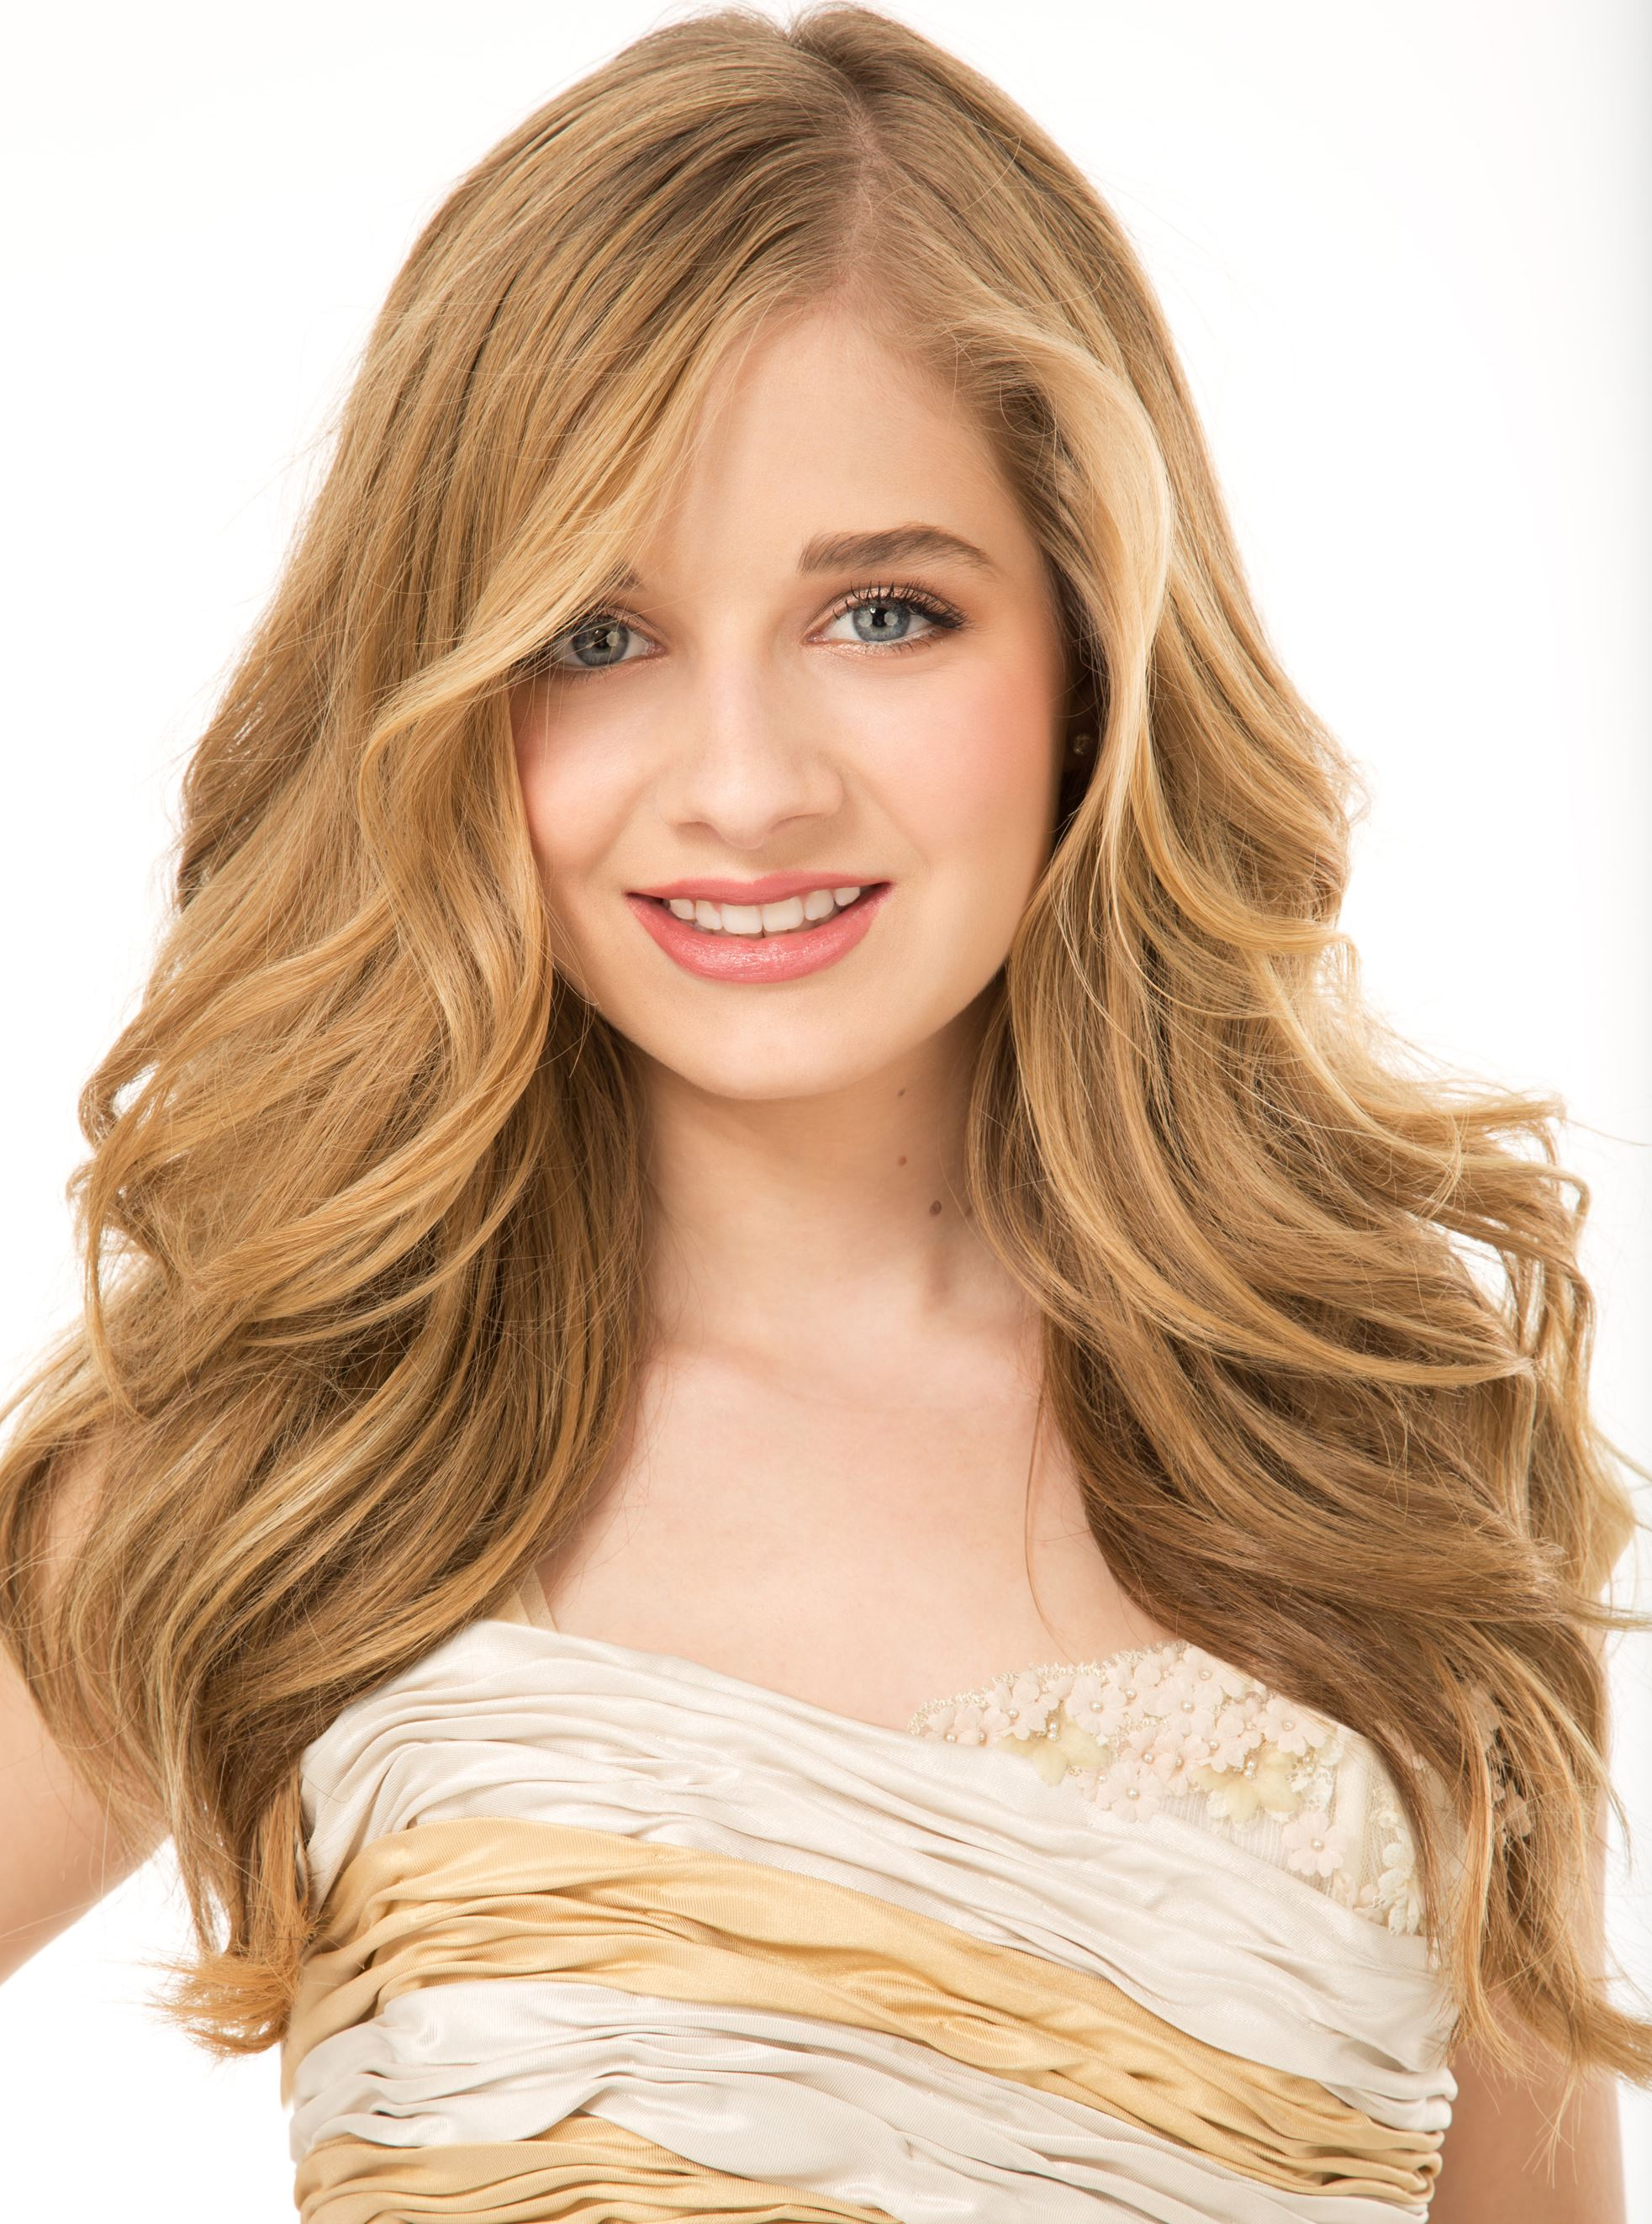 Jackie Evancho Net Worth